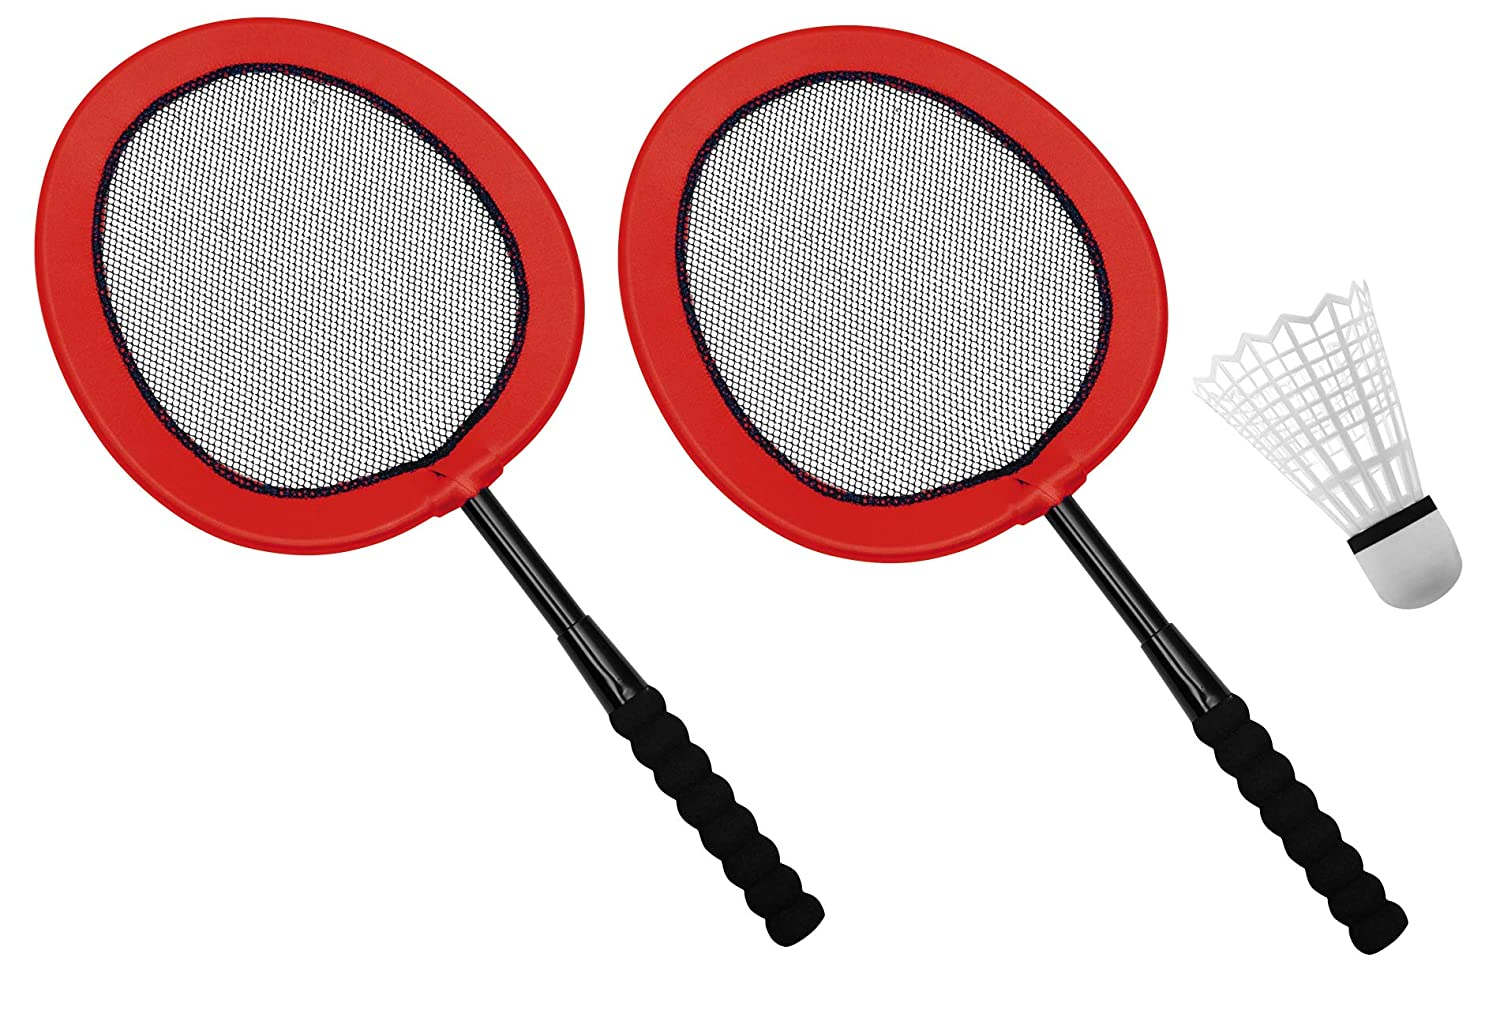 EDUPLAY Mega-Badminton-Set, 170175  170175  Eduplay_170175